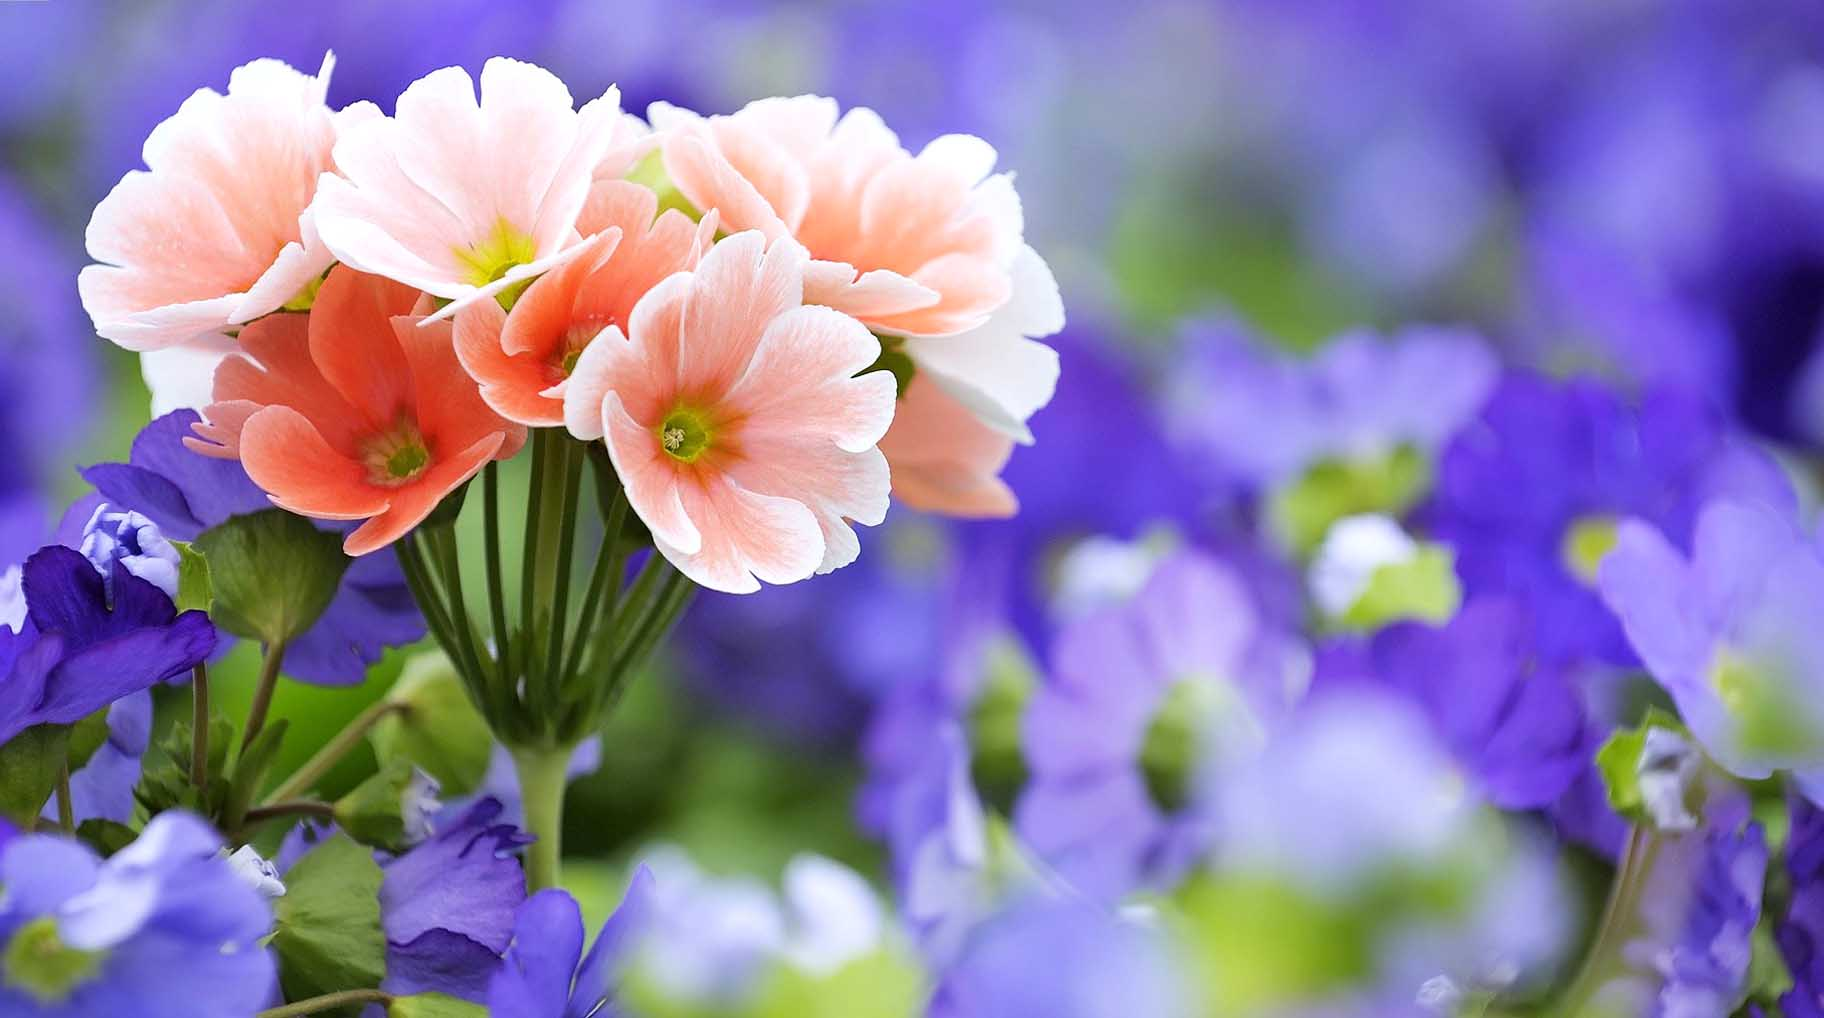 Downloadable Pictures Of Flowers.